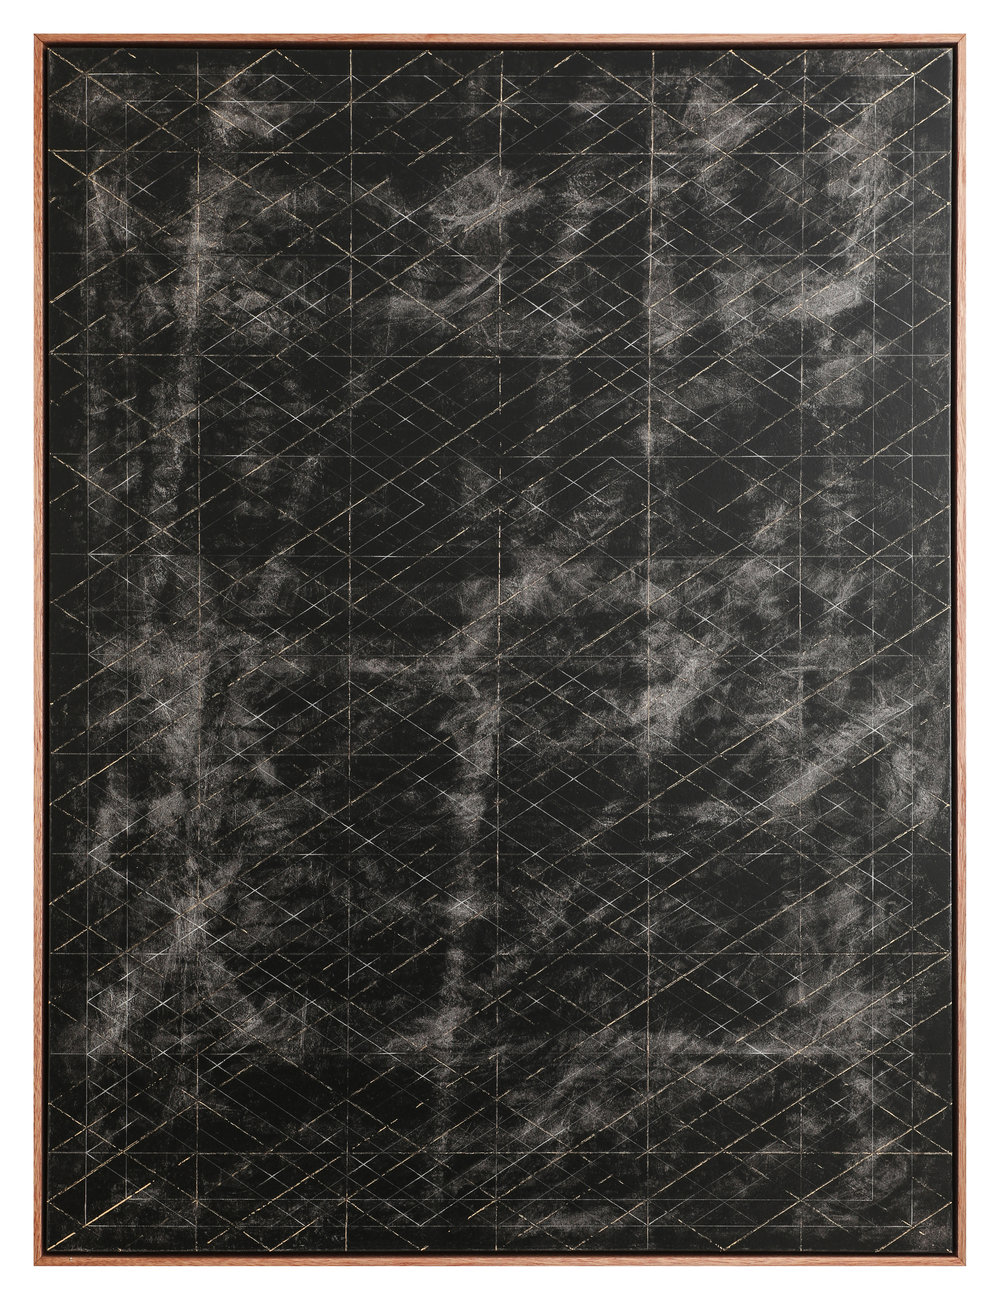 Linear Extractions Oil and Gold Leaf on Canvas 48 x 36in. (121.9 x 91.4 cm.) $15,000